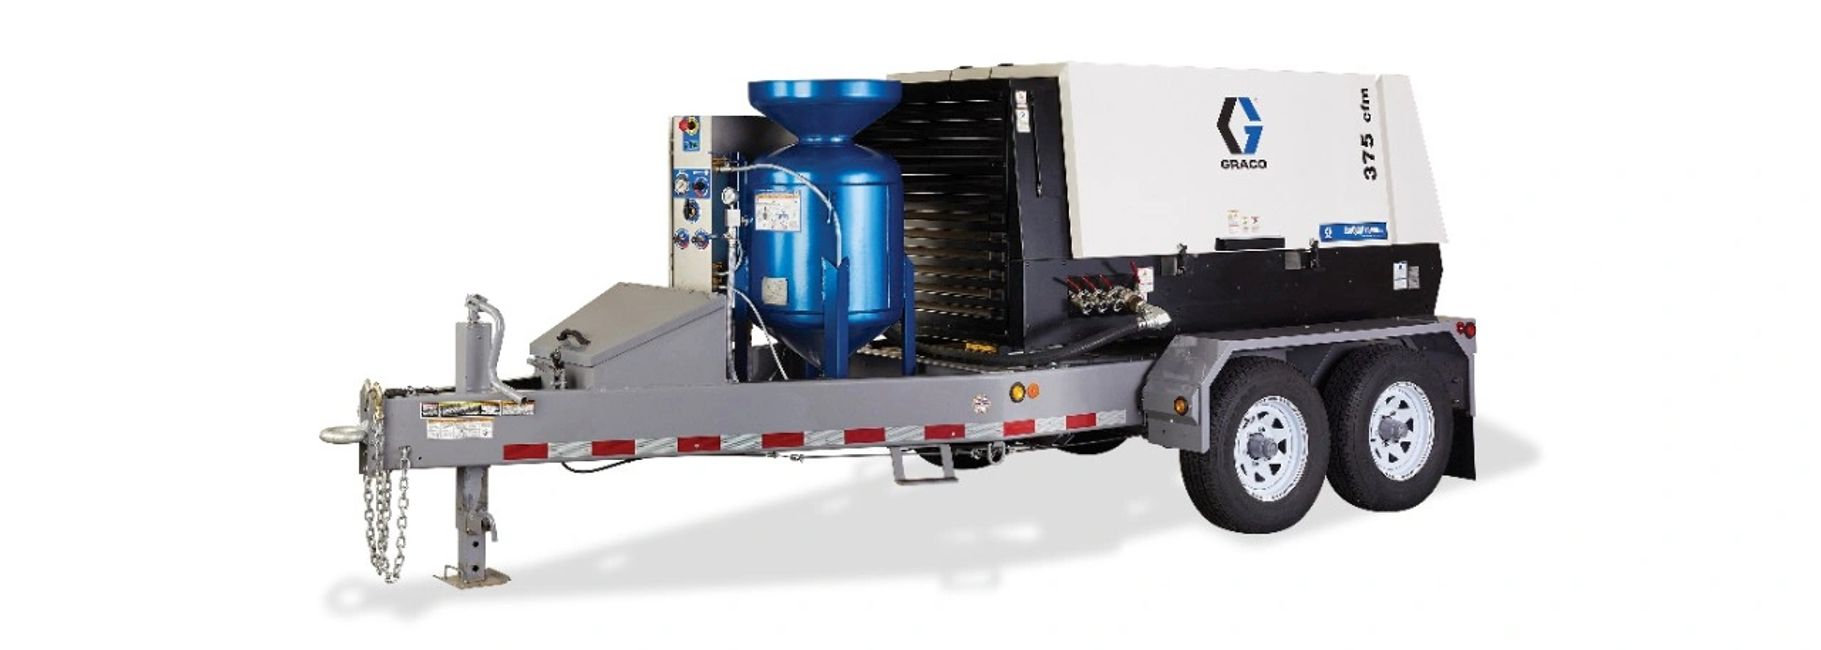 Sandblast equipment and parts from industry leading brands like Clemco, Schmidt, and Graco.